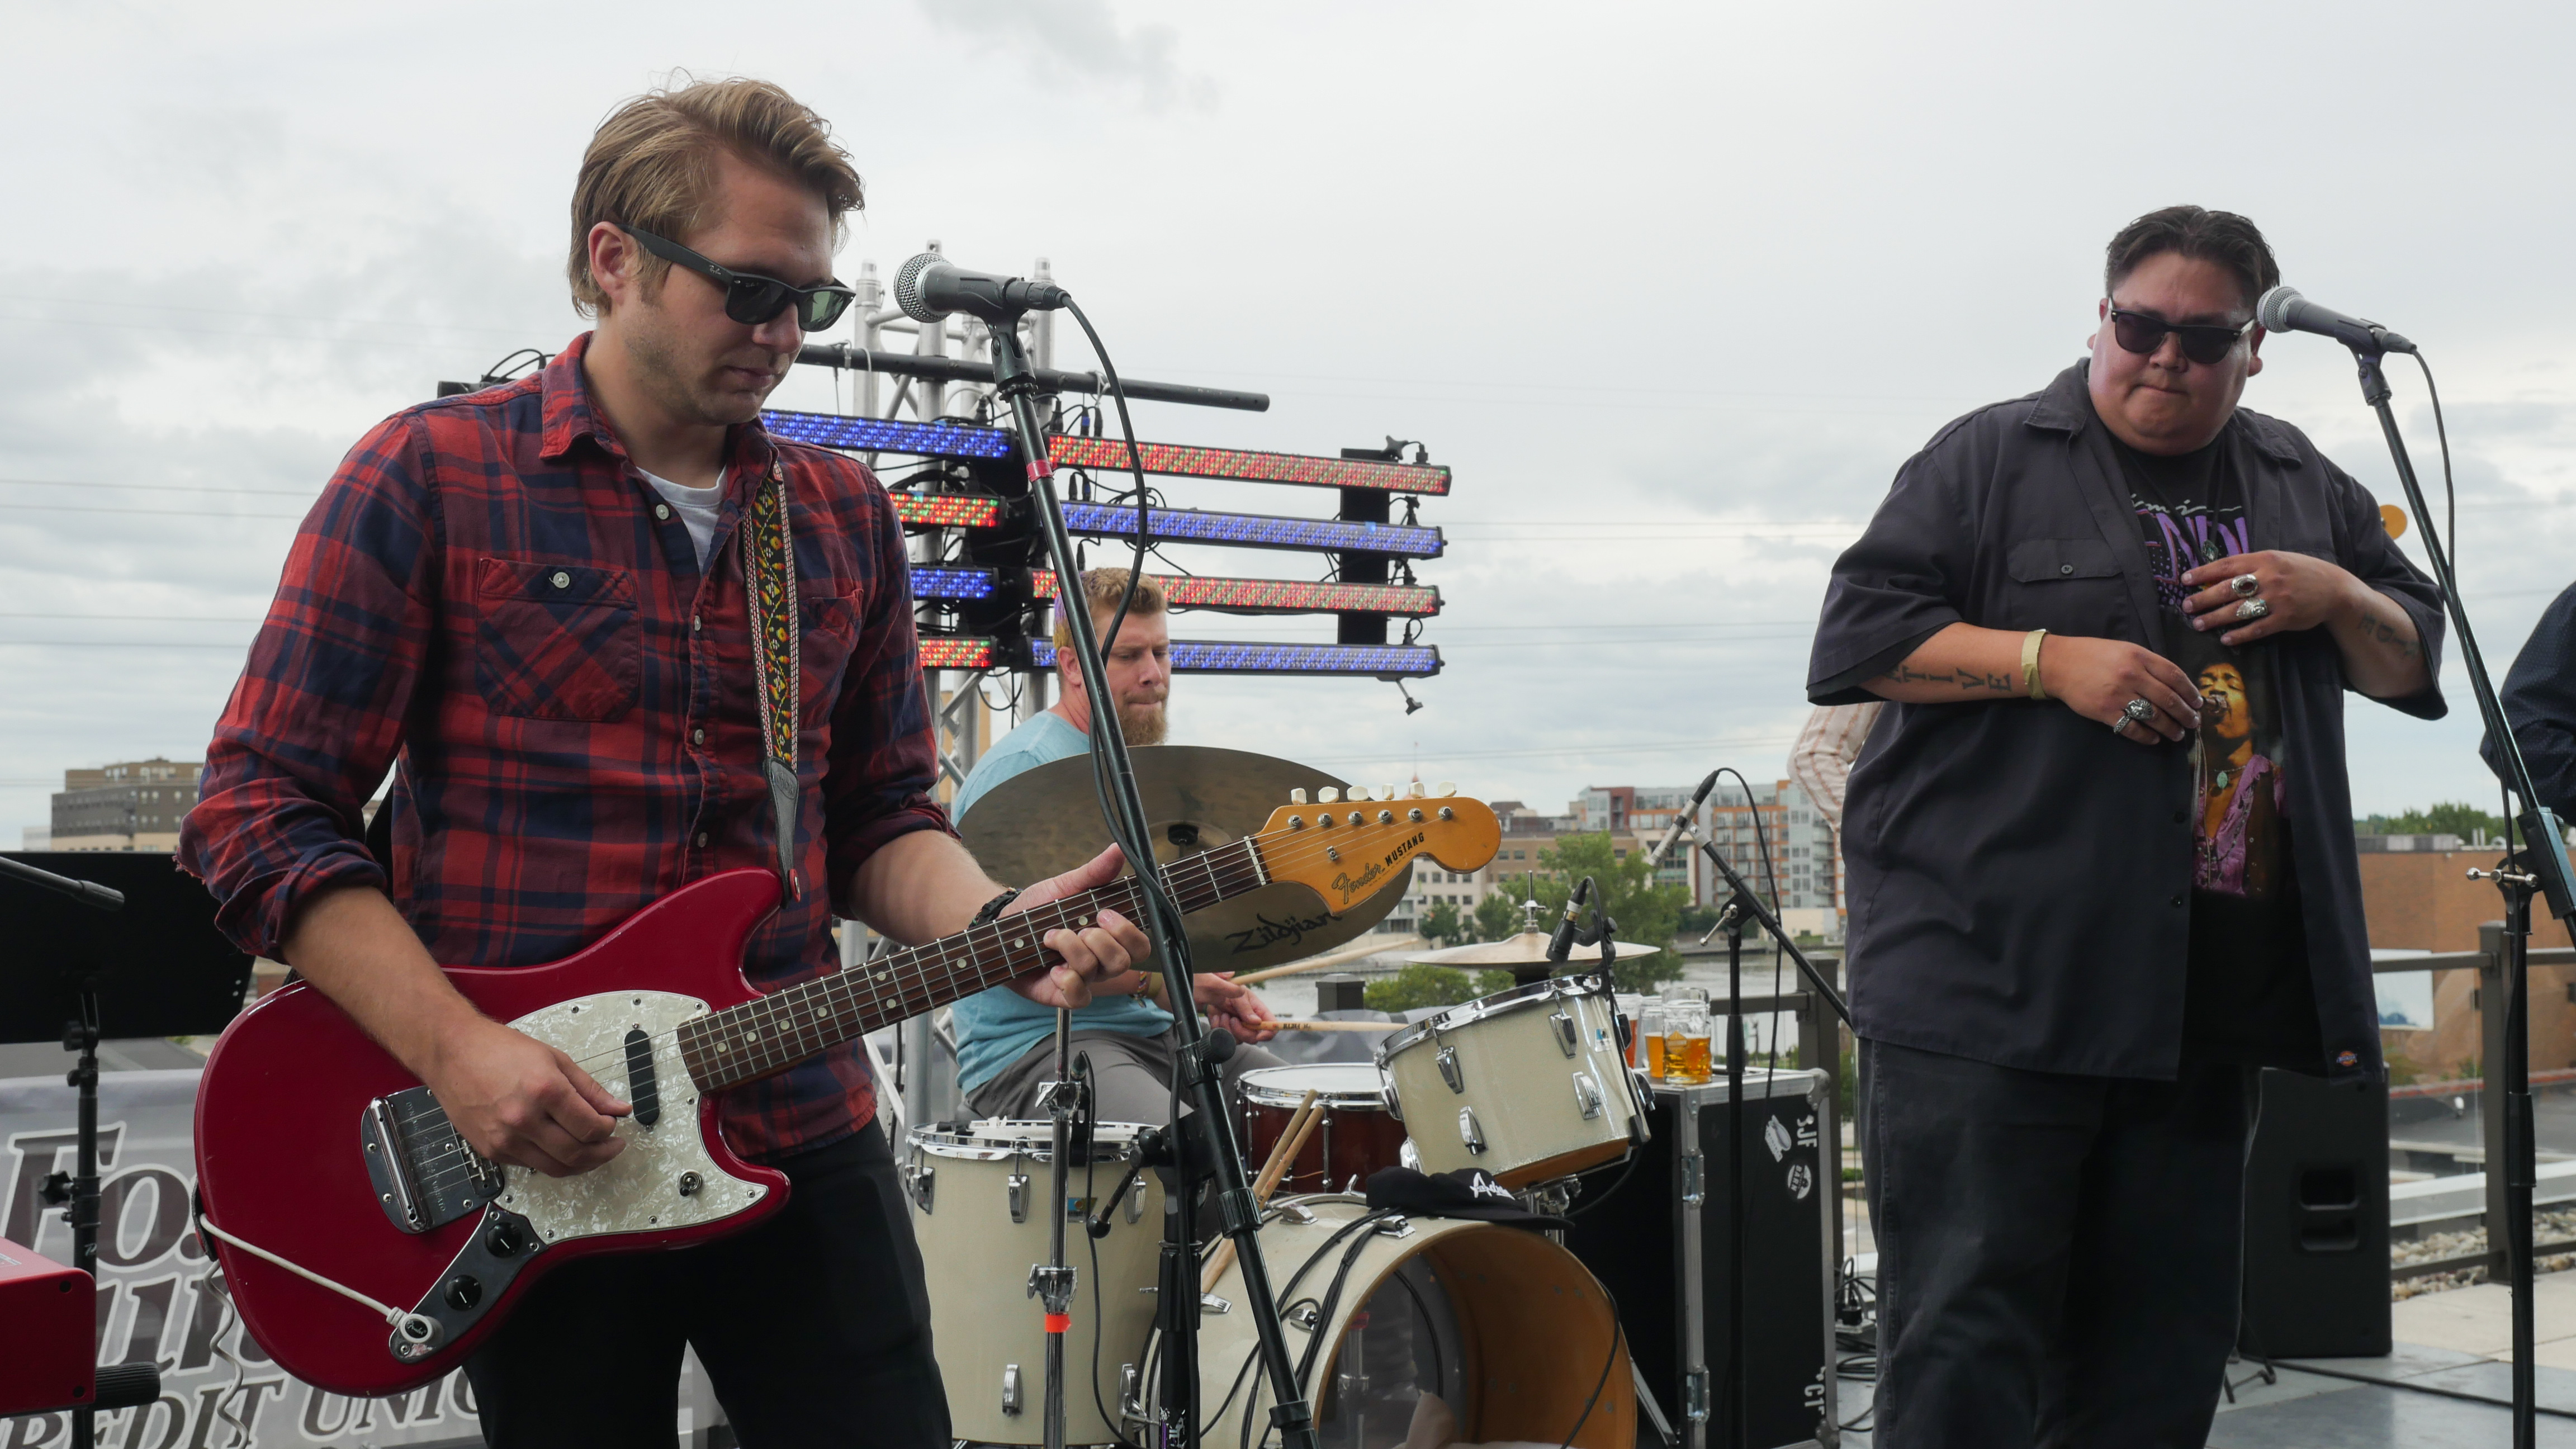 Appleton's J-Council performing Hopeland Festival 2019 at Titletown Brewing Co.'s Rooftap in the Railyard District of downtown Green Bay, Saturday, September 7th, 2019 (WCWF/ Beni Petersen)<br>